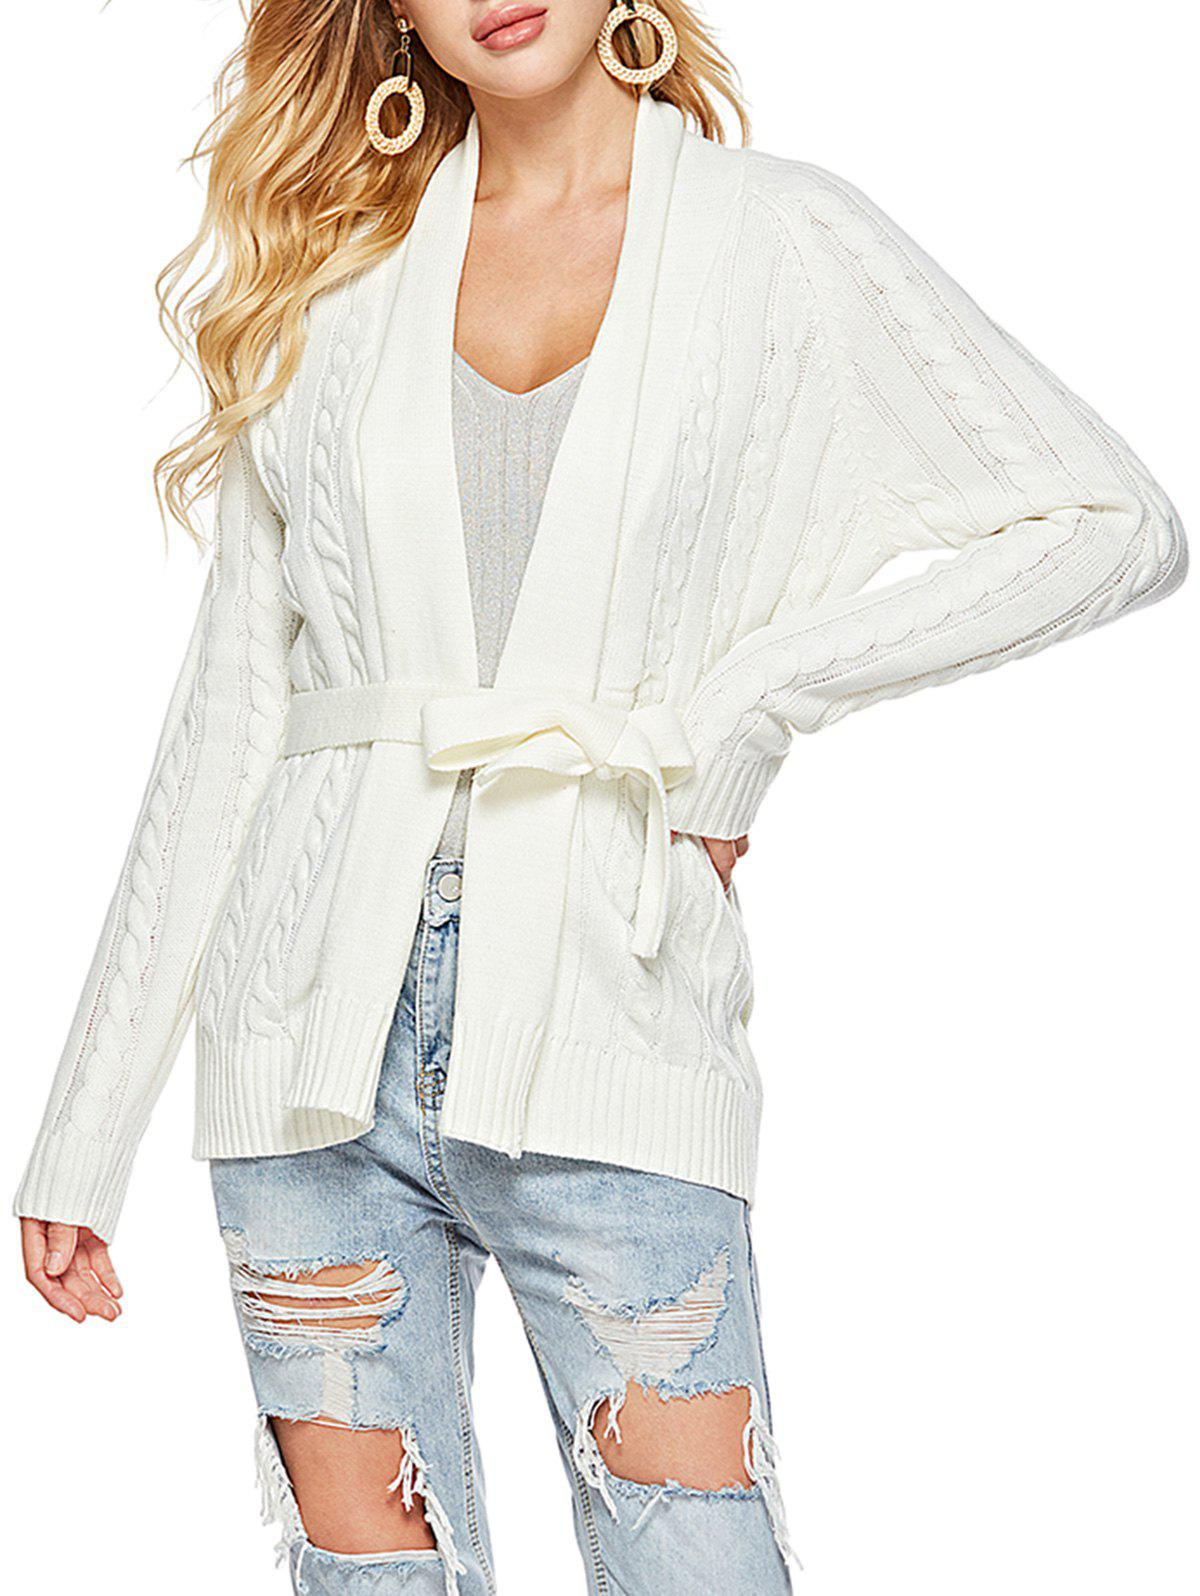 Shawl Collar Belted Cable Knit Cardigan - WHITE L